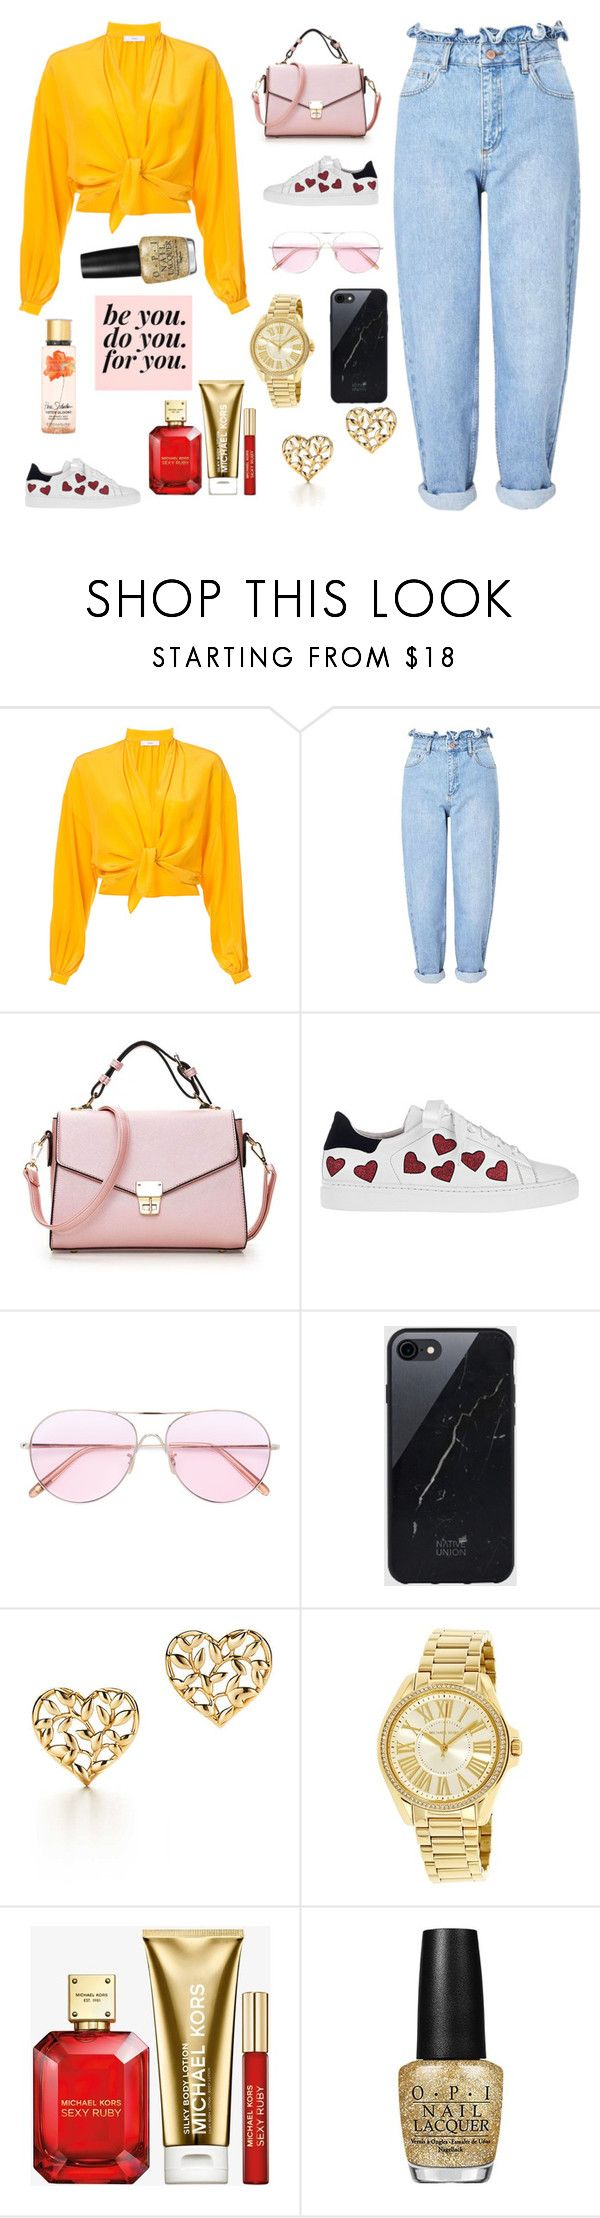 """""""No Pictures"""" by s-reyes-2026 ❤ liked on Polyvore featuring Tome, Miss Selfridge, Steffen Schraut, Oliver Peoples, Sefton, Paloma Picasso, Michael Kors, OPI and Victoria's Secret"""